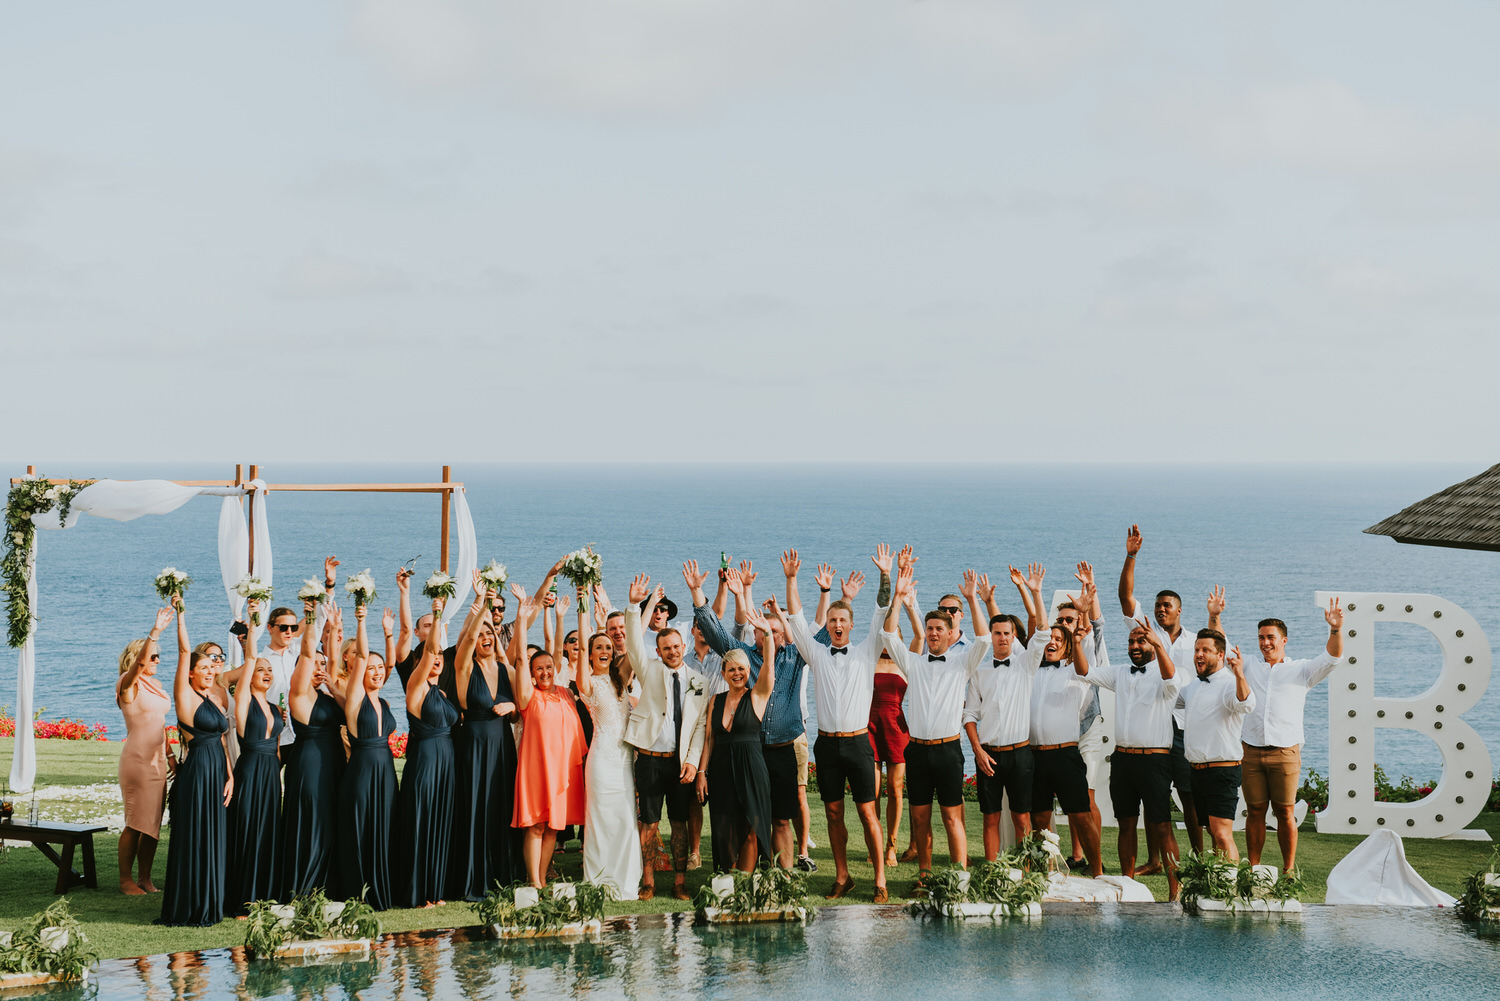 bali wedding destination - the ungasan wedding - bali wedding photographer - diktatphotography - aimee + blake wedding - 83